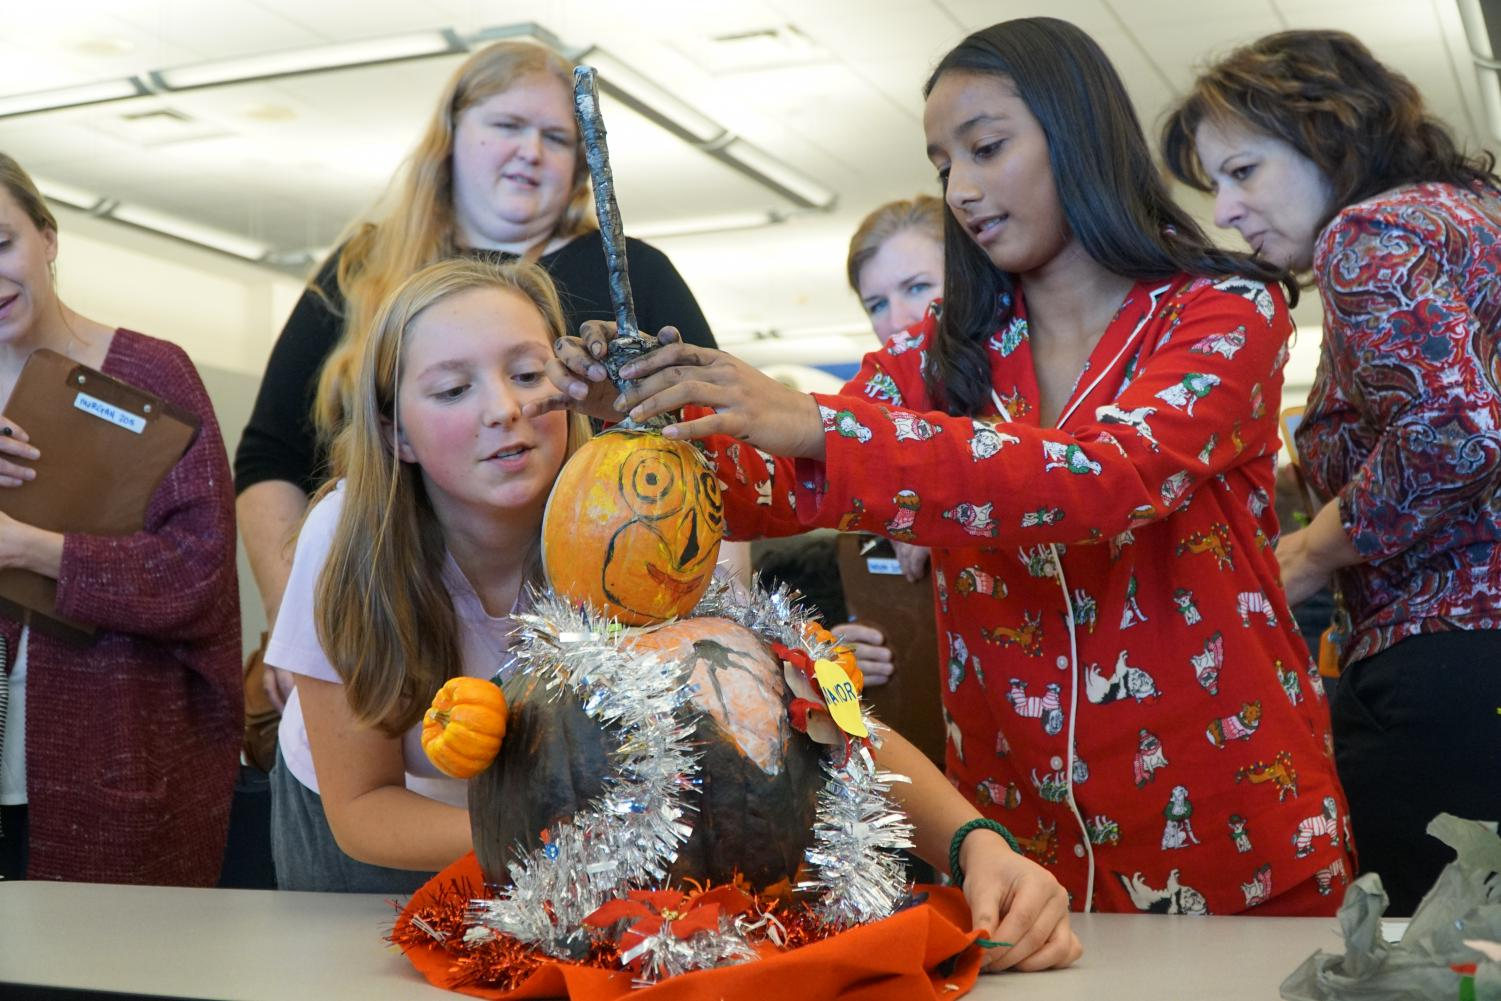 Sophomores+Georgia+Trentalange+of+Middletown%2C+left%2C+and+Mahita+Dasu+of+Marlboro+arrange+their+pumpkin+display+in+front+of+the+judges%2C+which+took+third+place.+